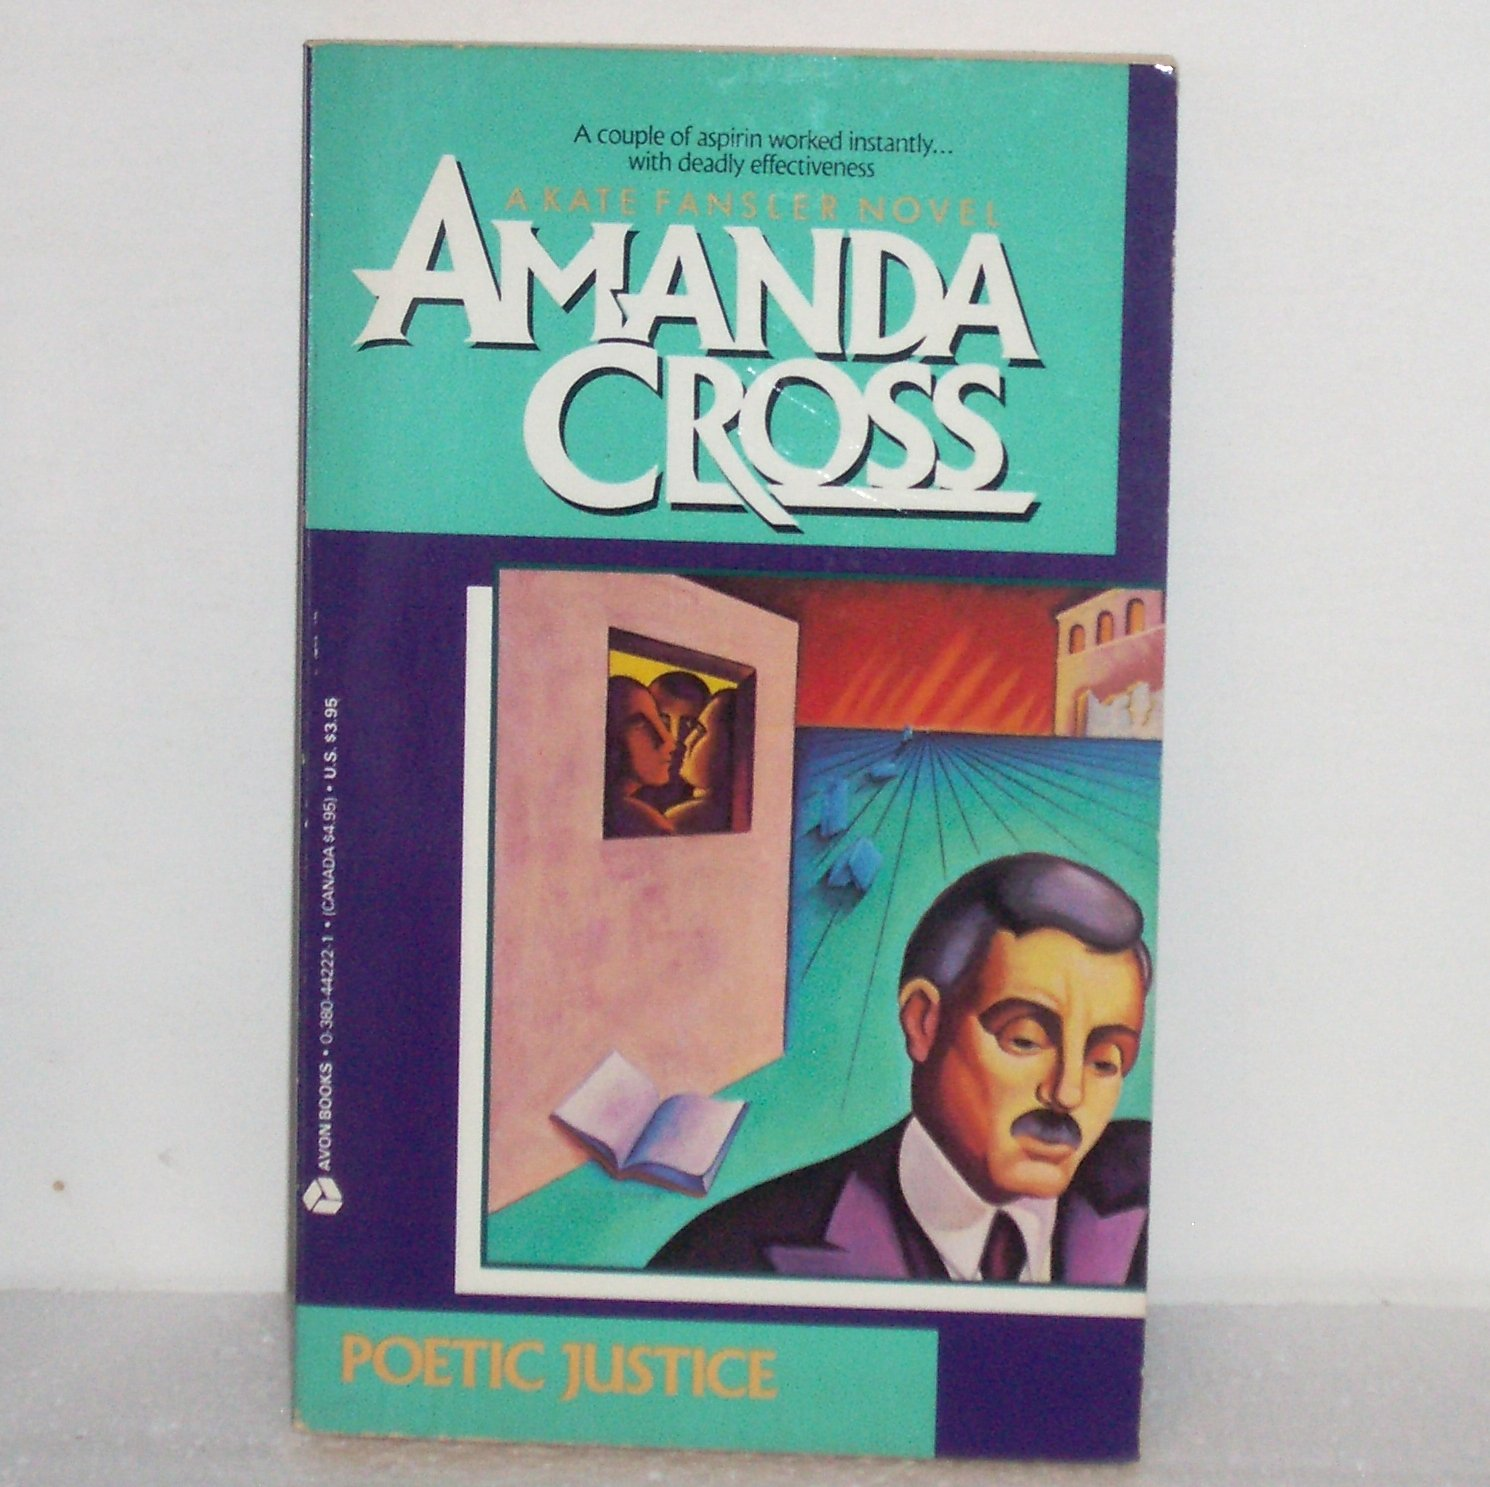 Poetic Justice by Amanda Cross 1991 A Kate Fansler Cozy Mystery